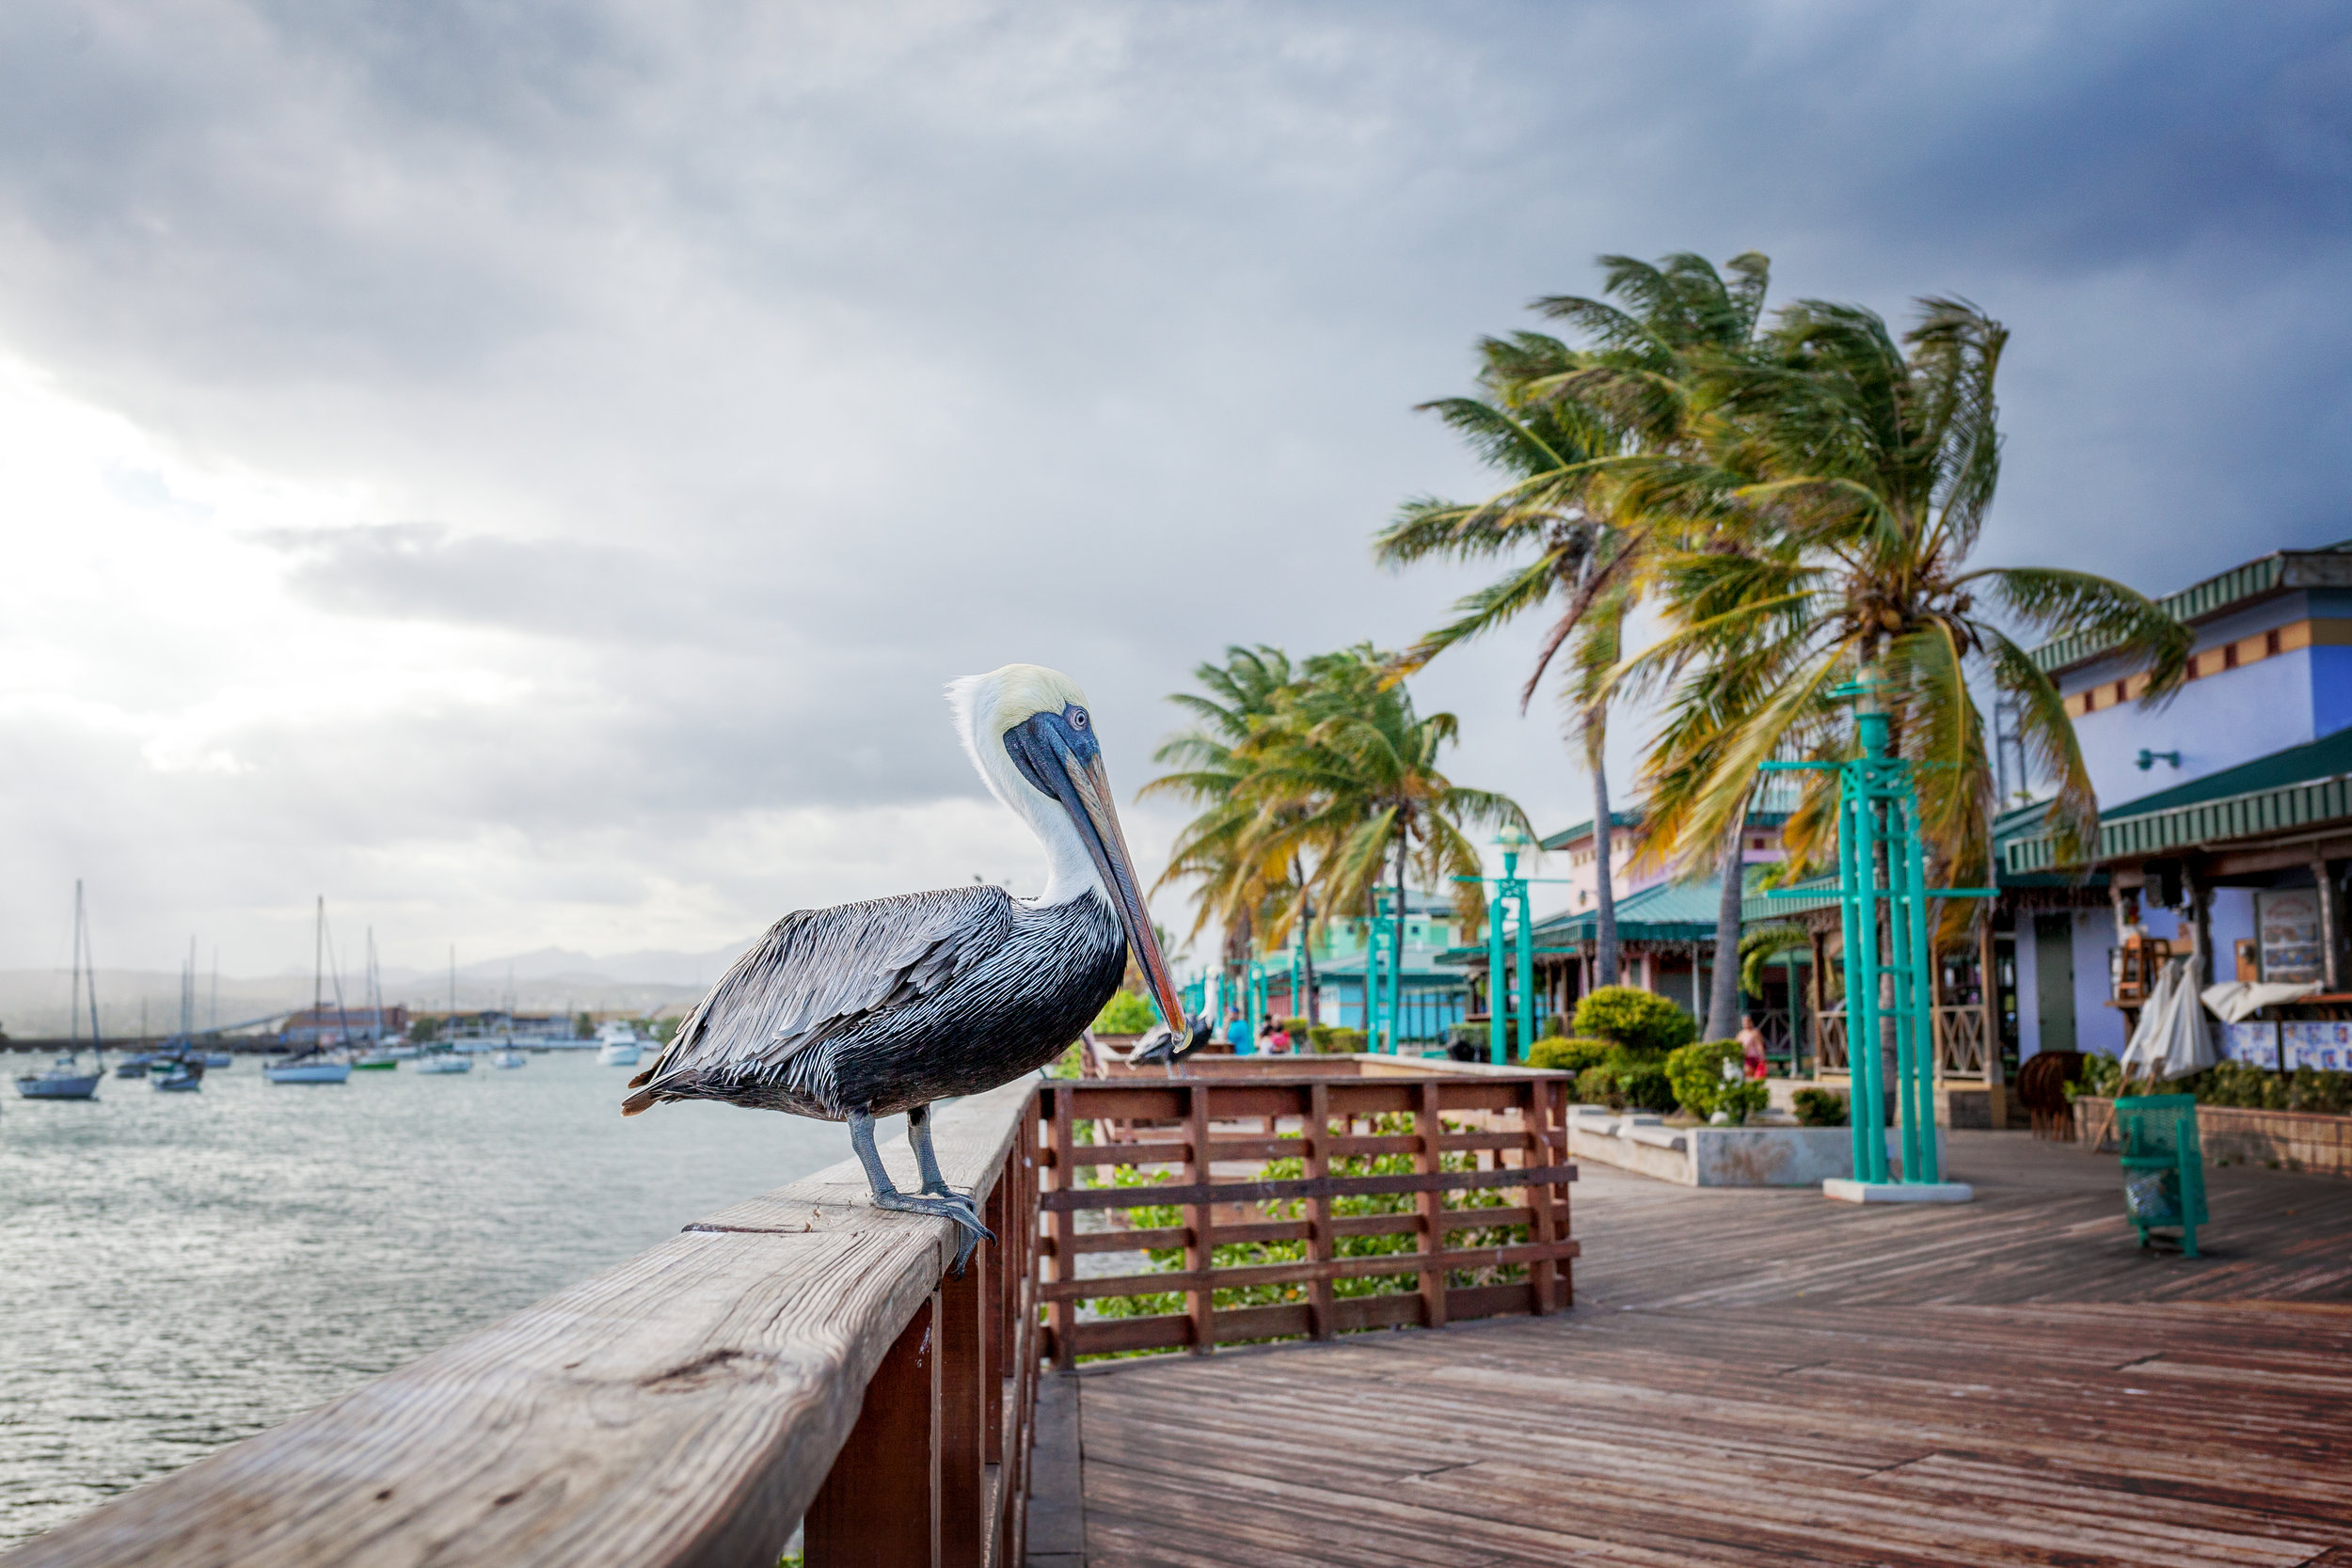 A pelican is waiting for food